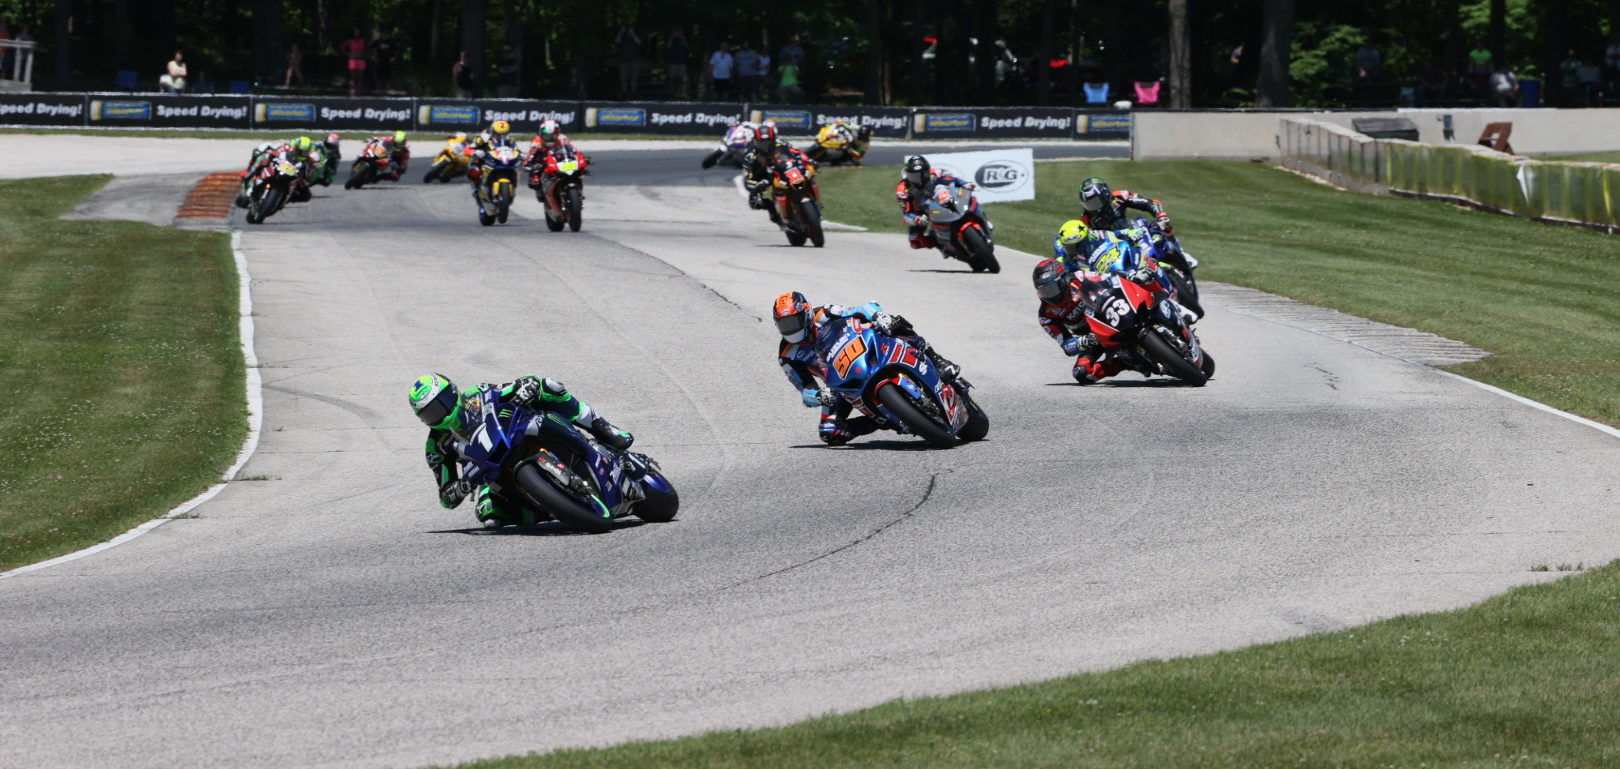 Cameron Beaubier (1) leads Bobby Fong (50), Kyle Wyman (33), Toni Elias (24), Jake Gagne (32), Josh Herrin (2), Mathew Scholtz (11), and the rest of the field early in MotoAmerica Superbike One. Photo by Brian J. Nelson, courtesy MotoAmerica.